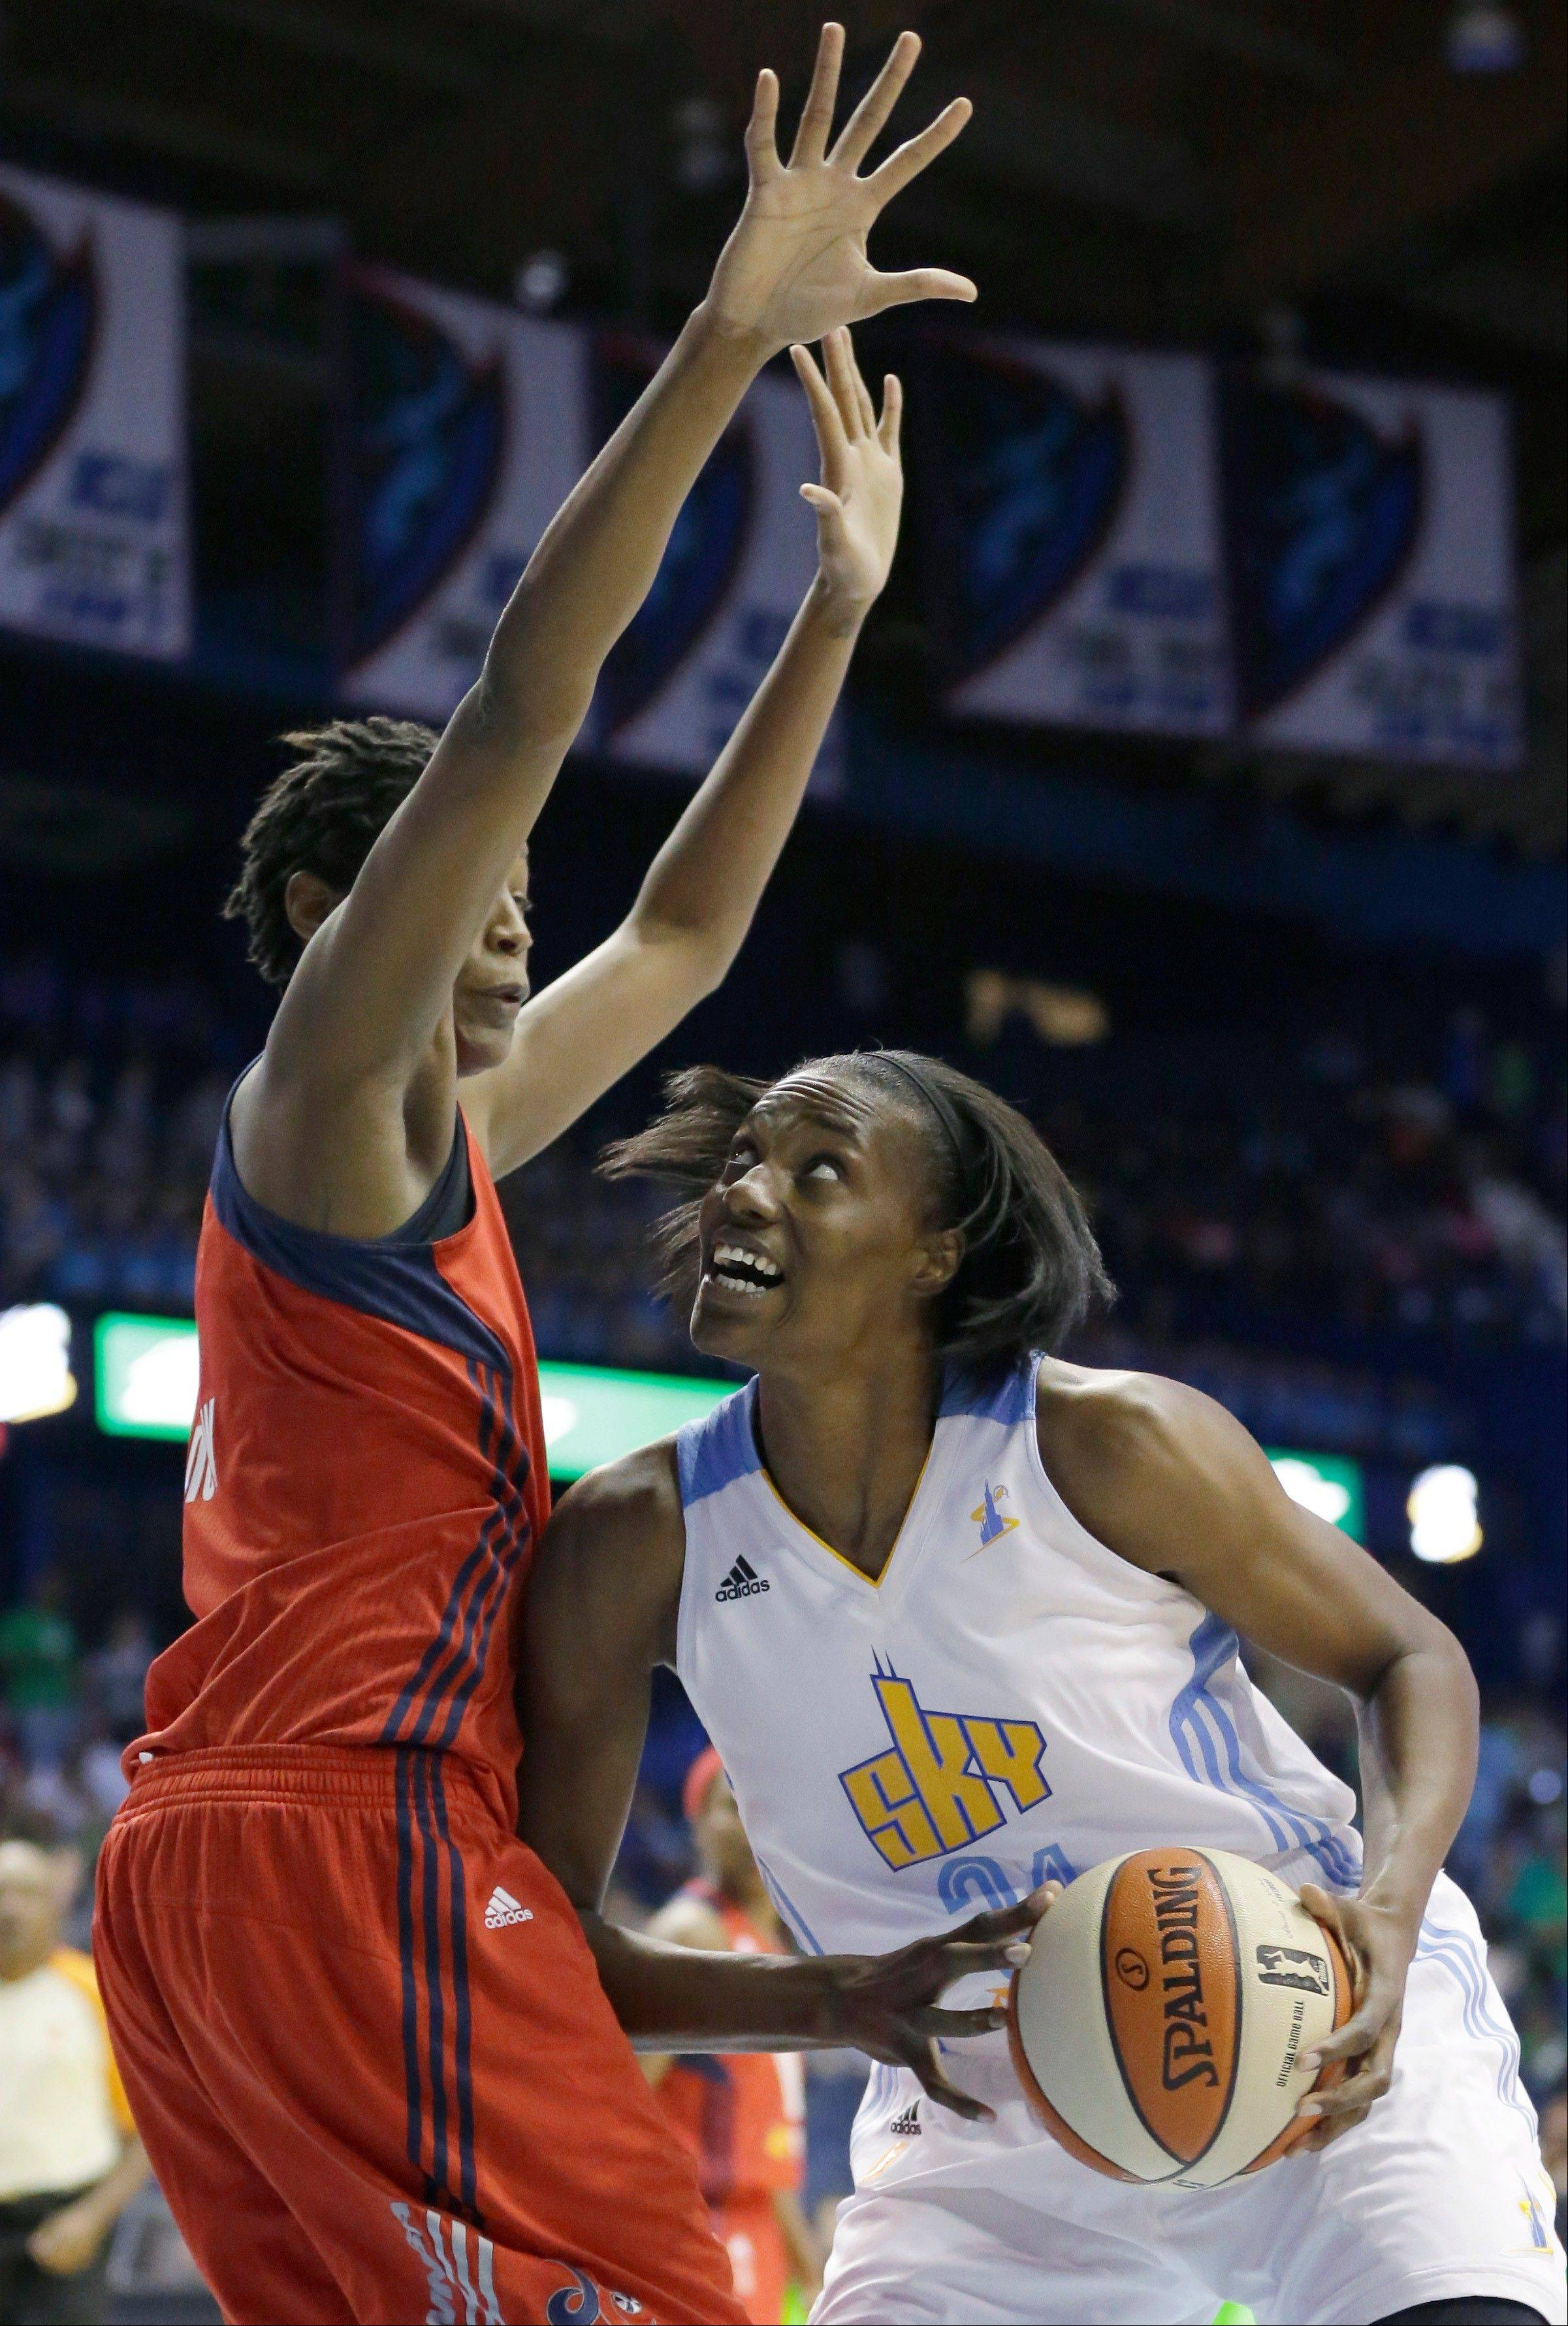 Chicago Sky center Sylvia Fowles, right, looks to the basket as Washington's Michelle Snow defends Wednesday. Fowles finished with 26 points and 18 rebounds in the Sky's victory.